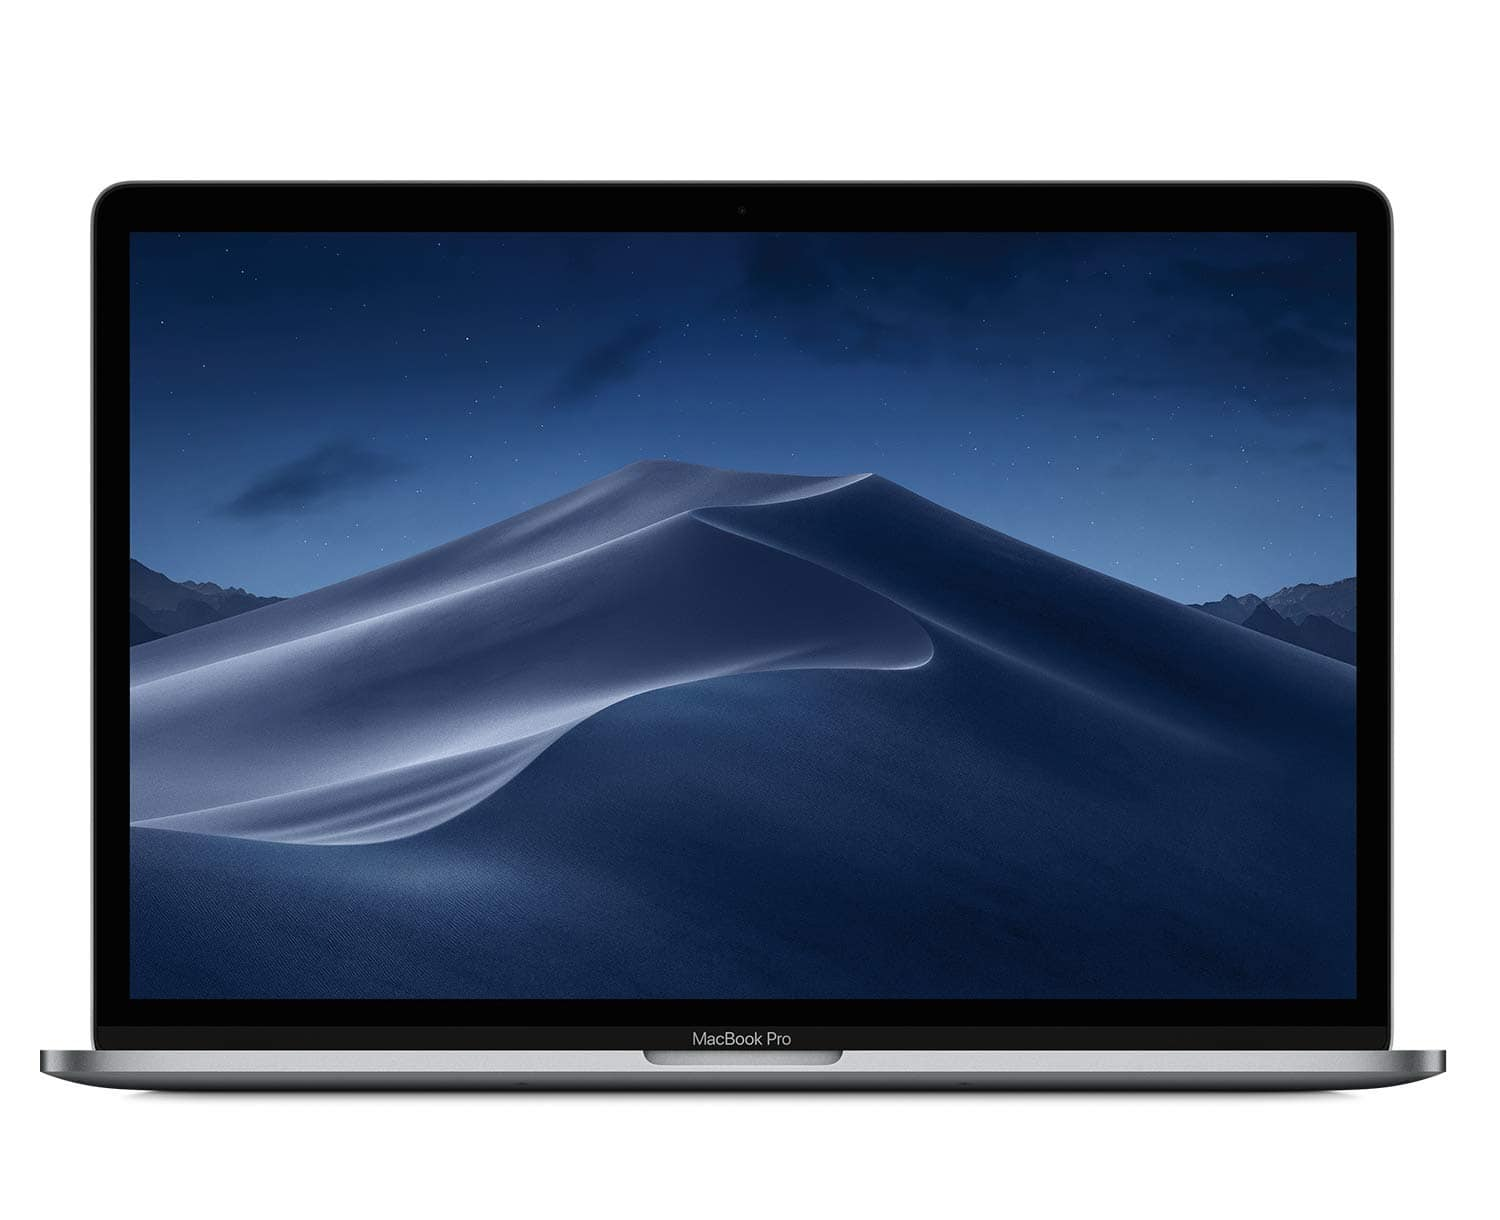 Apple MacBook Pro 15-inch, Touch Bar, 2.6GHz 6-core Intel Core i7, 16GB RAM, 256GB SSD) - Space Gray $1999